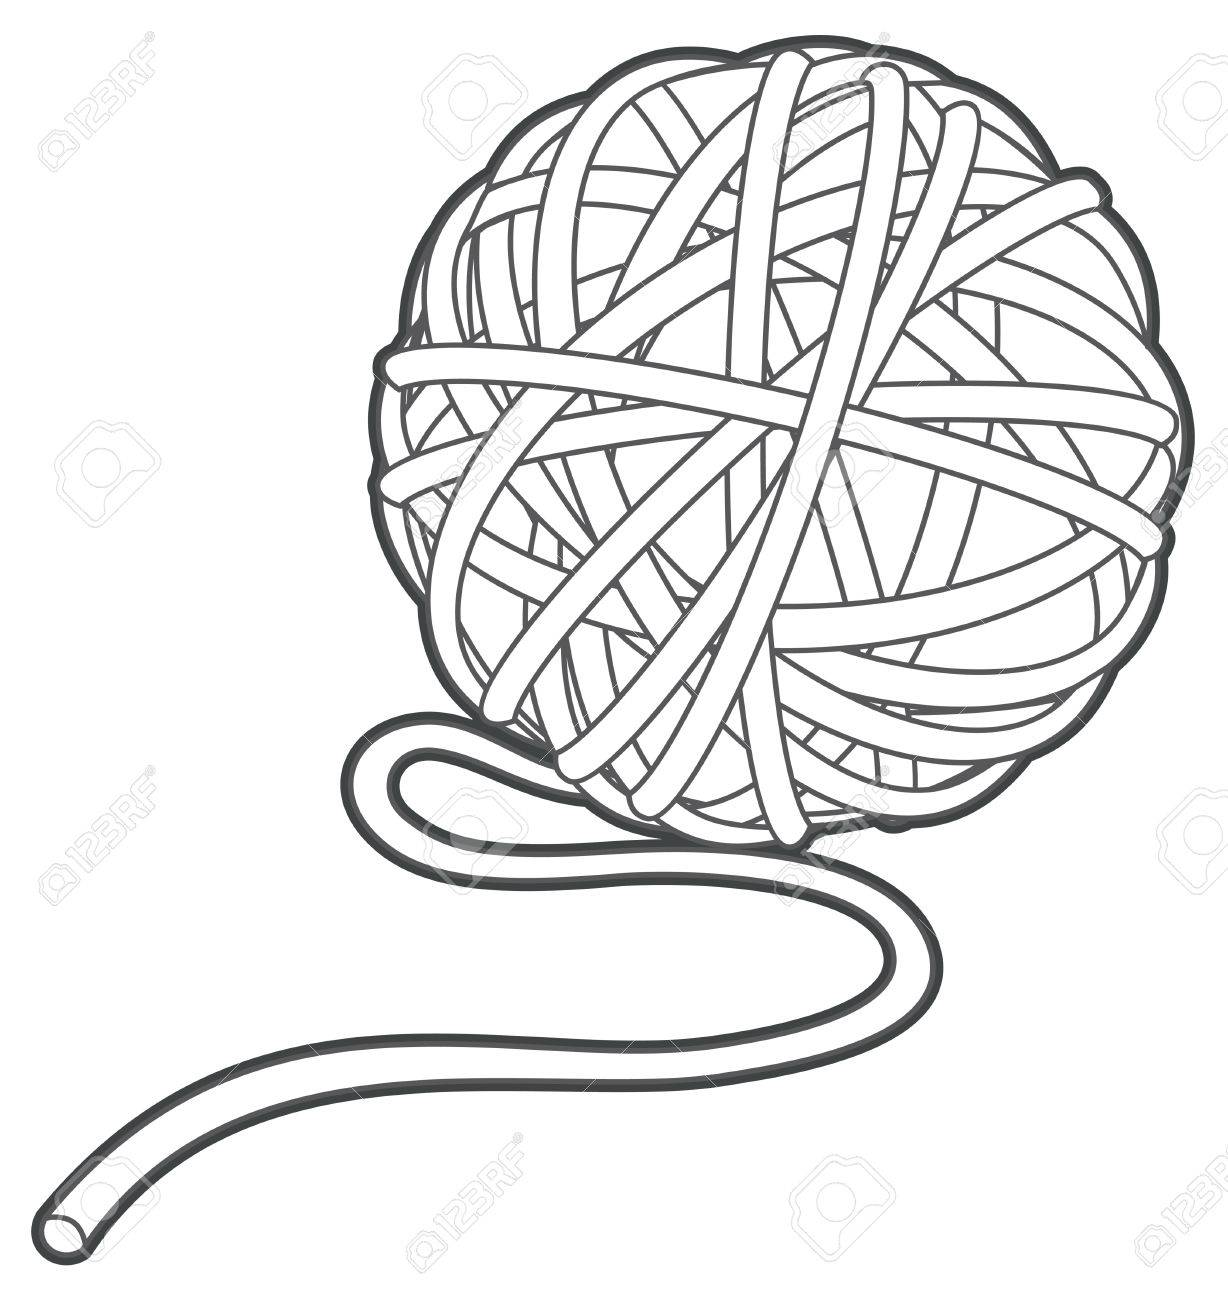 ball of yarn vector outline illustration isolated.